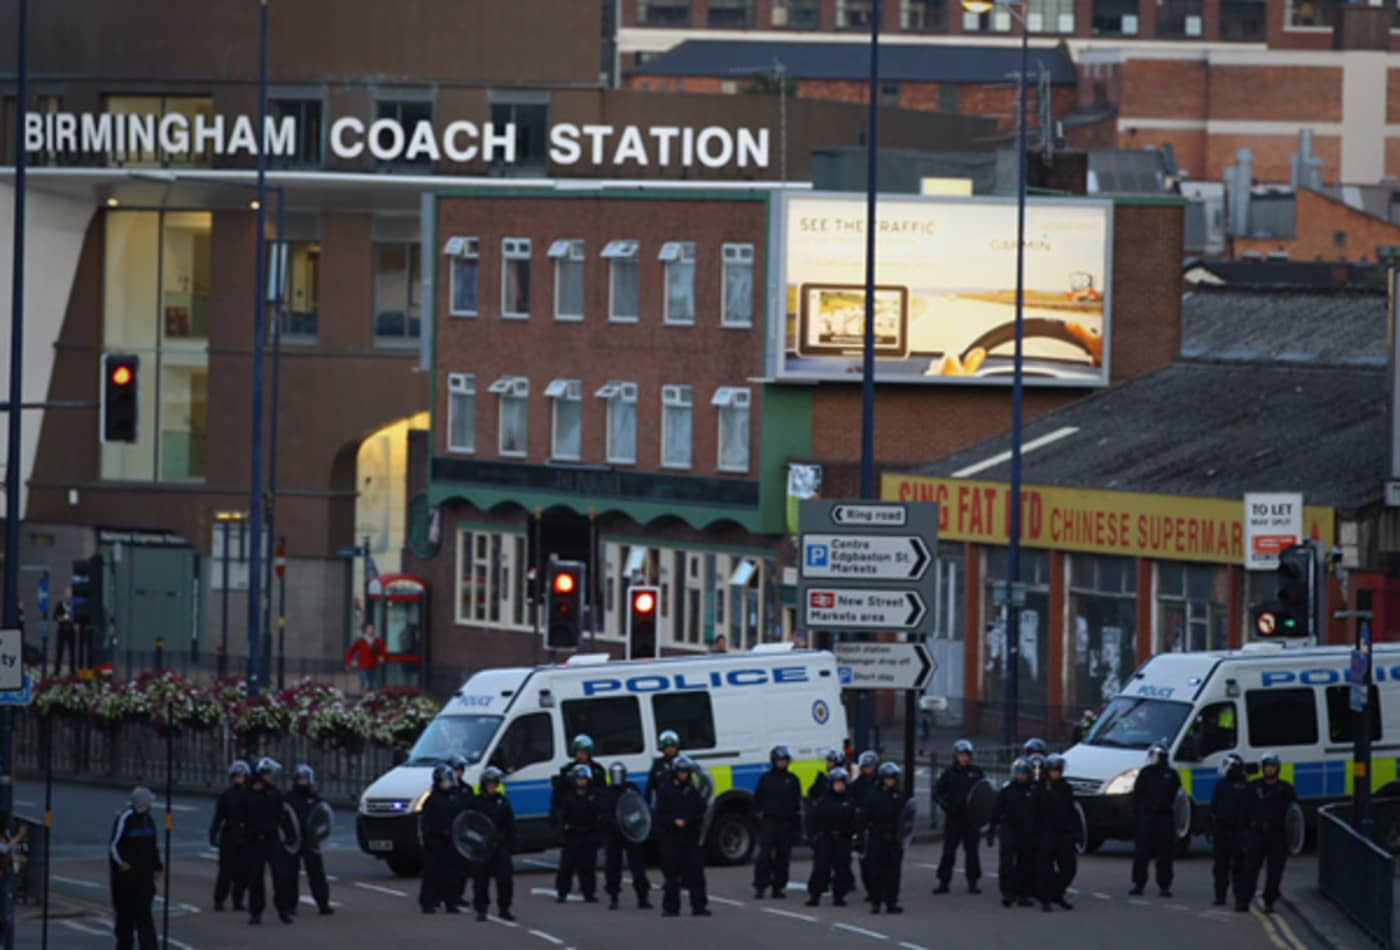 CNBC_scenes_from_london_riots_birmingham_police.jpg